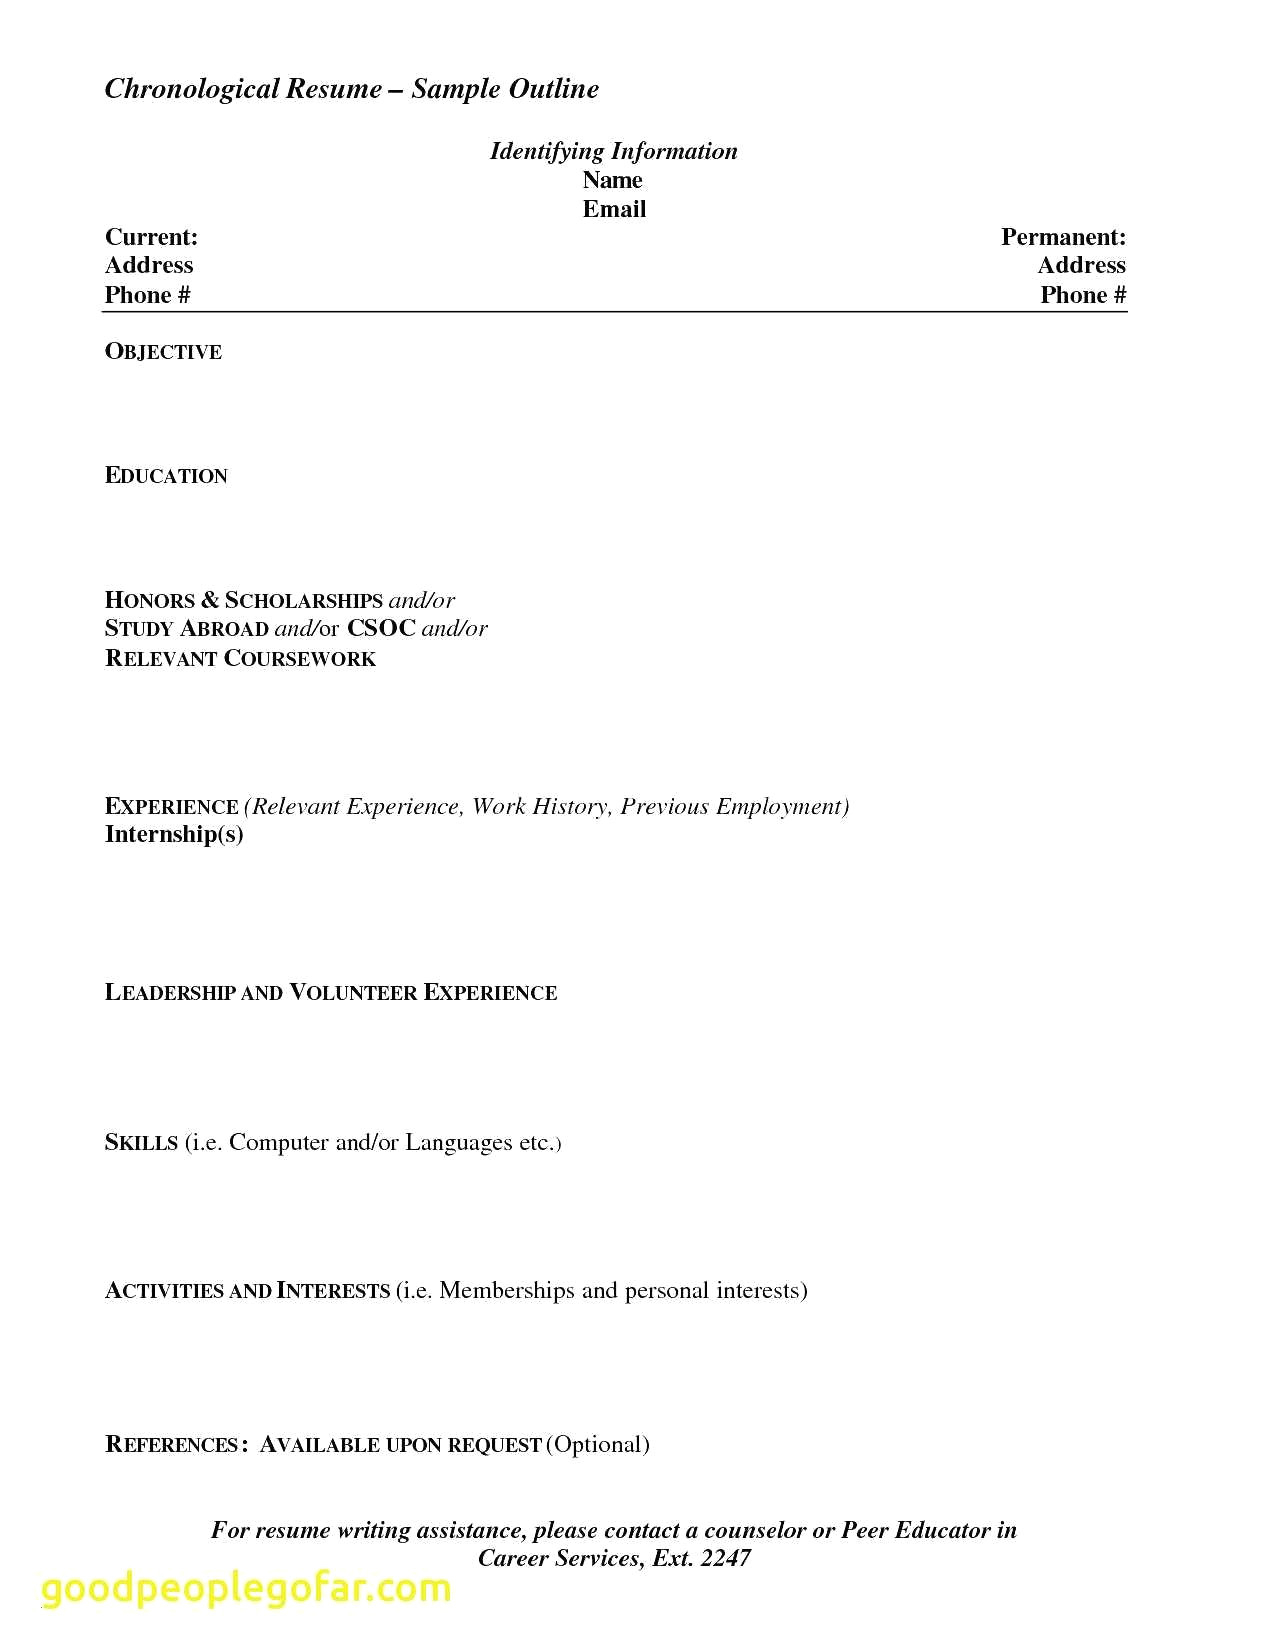 tradesman resume template example-Example Military Resume Unique Resume Building software Beautiful Military Resume 0d Aurelianmg 17-n